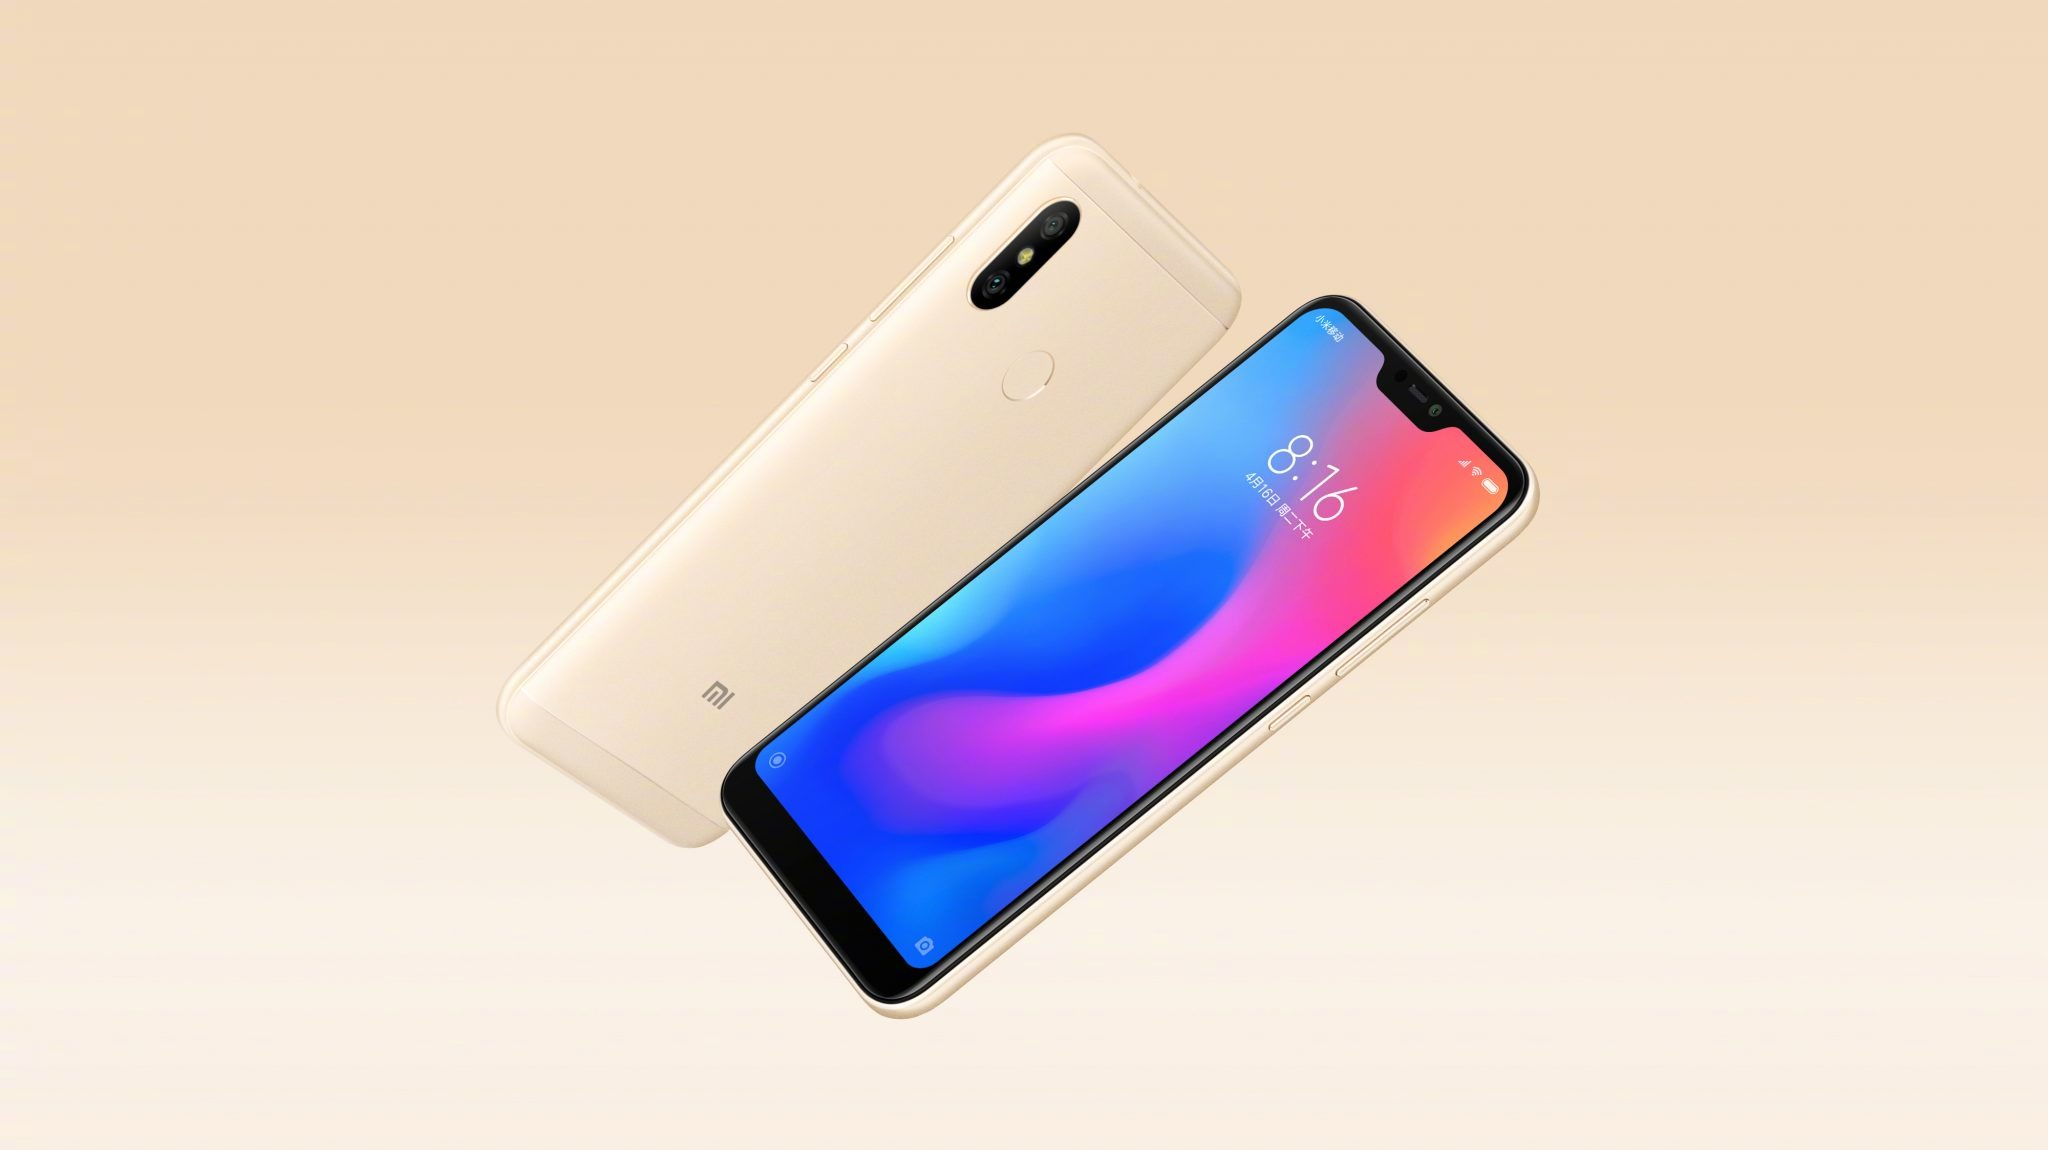 This is the Xiaomi Redmi 6 Pro with a Notch & dual cameras 4